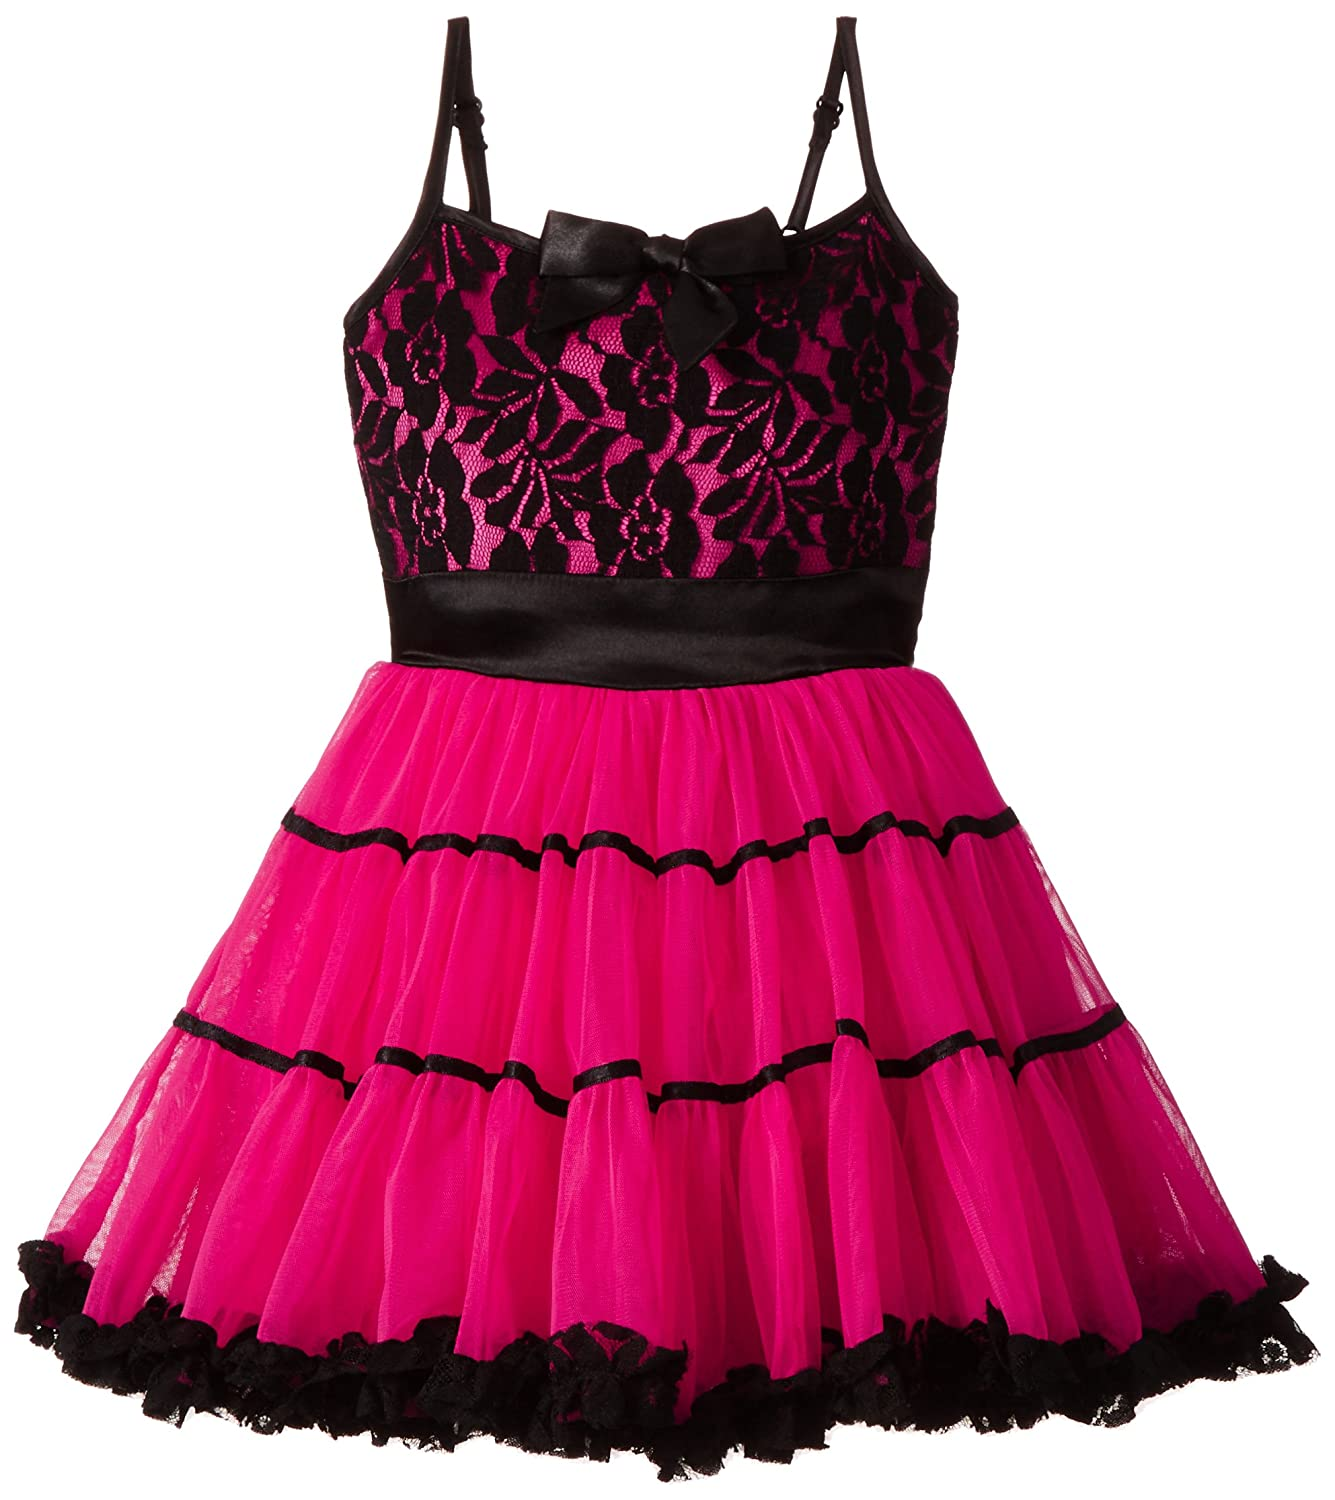 bc8fbb46bf07 Buy Baby Girls Party Dresses Online At Rs 299 Lowest Price - Amazon ...